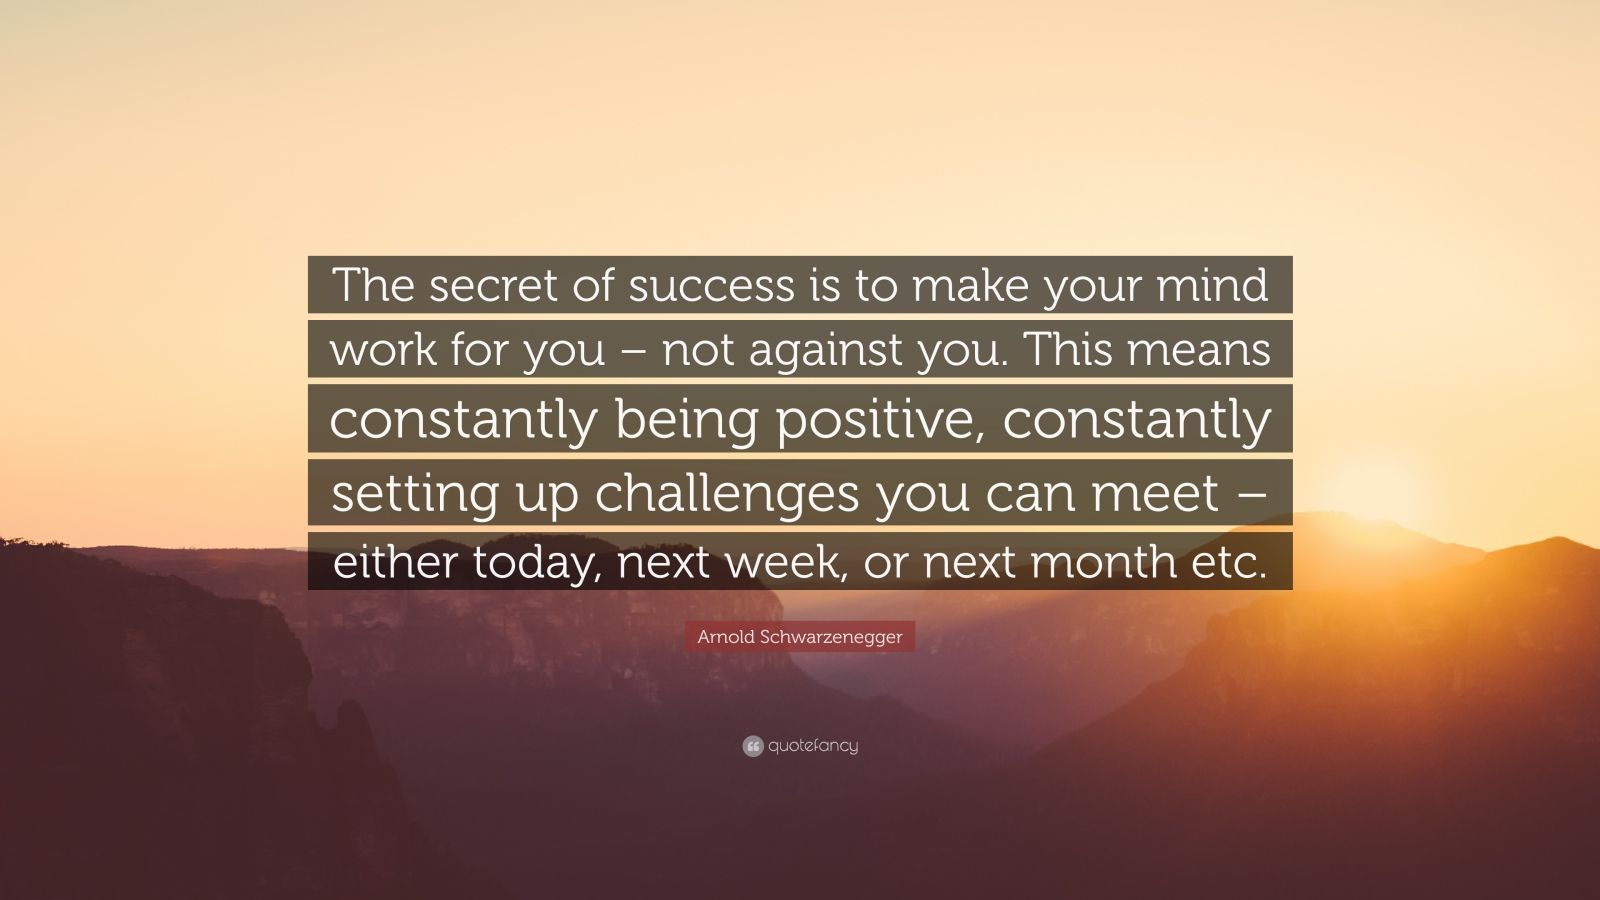 """Arnold Schwarzenegger Quote: """"The secret of success is to make your mind work for you – not against you. This means constantly being positive, constantly setting up challenges you can meet – either today, next week, or next month etc."""""""